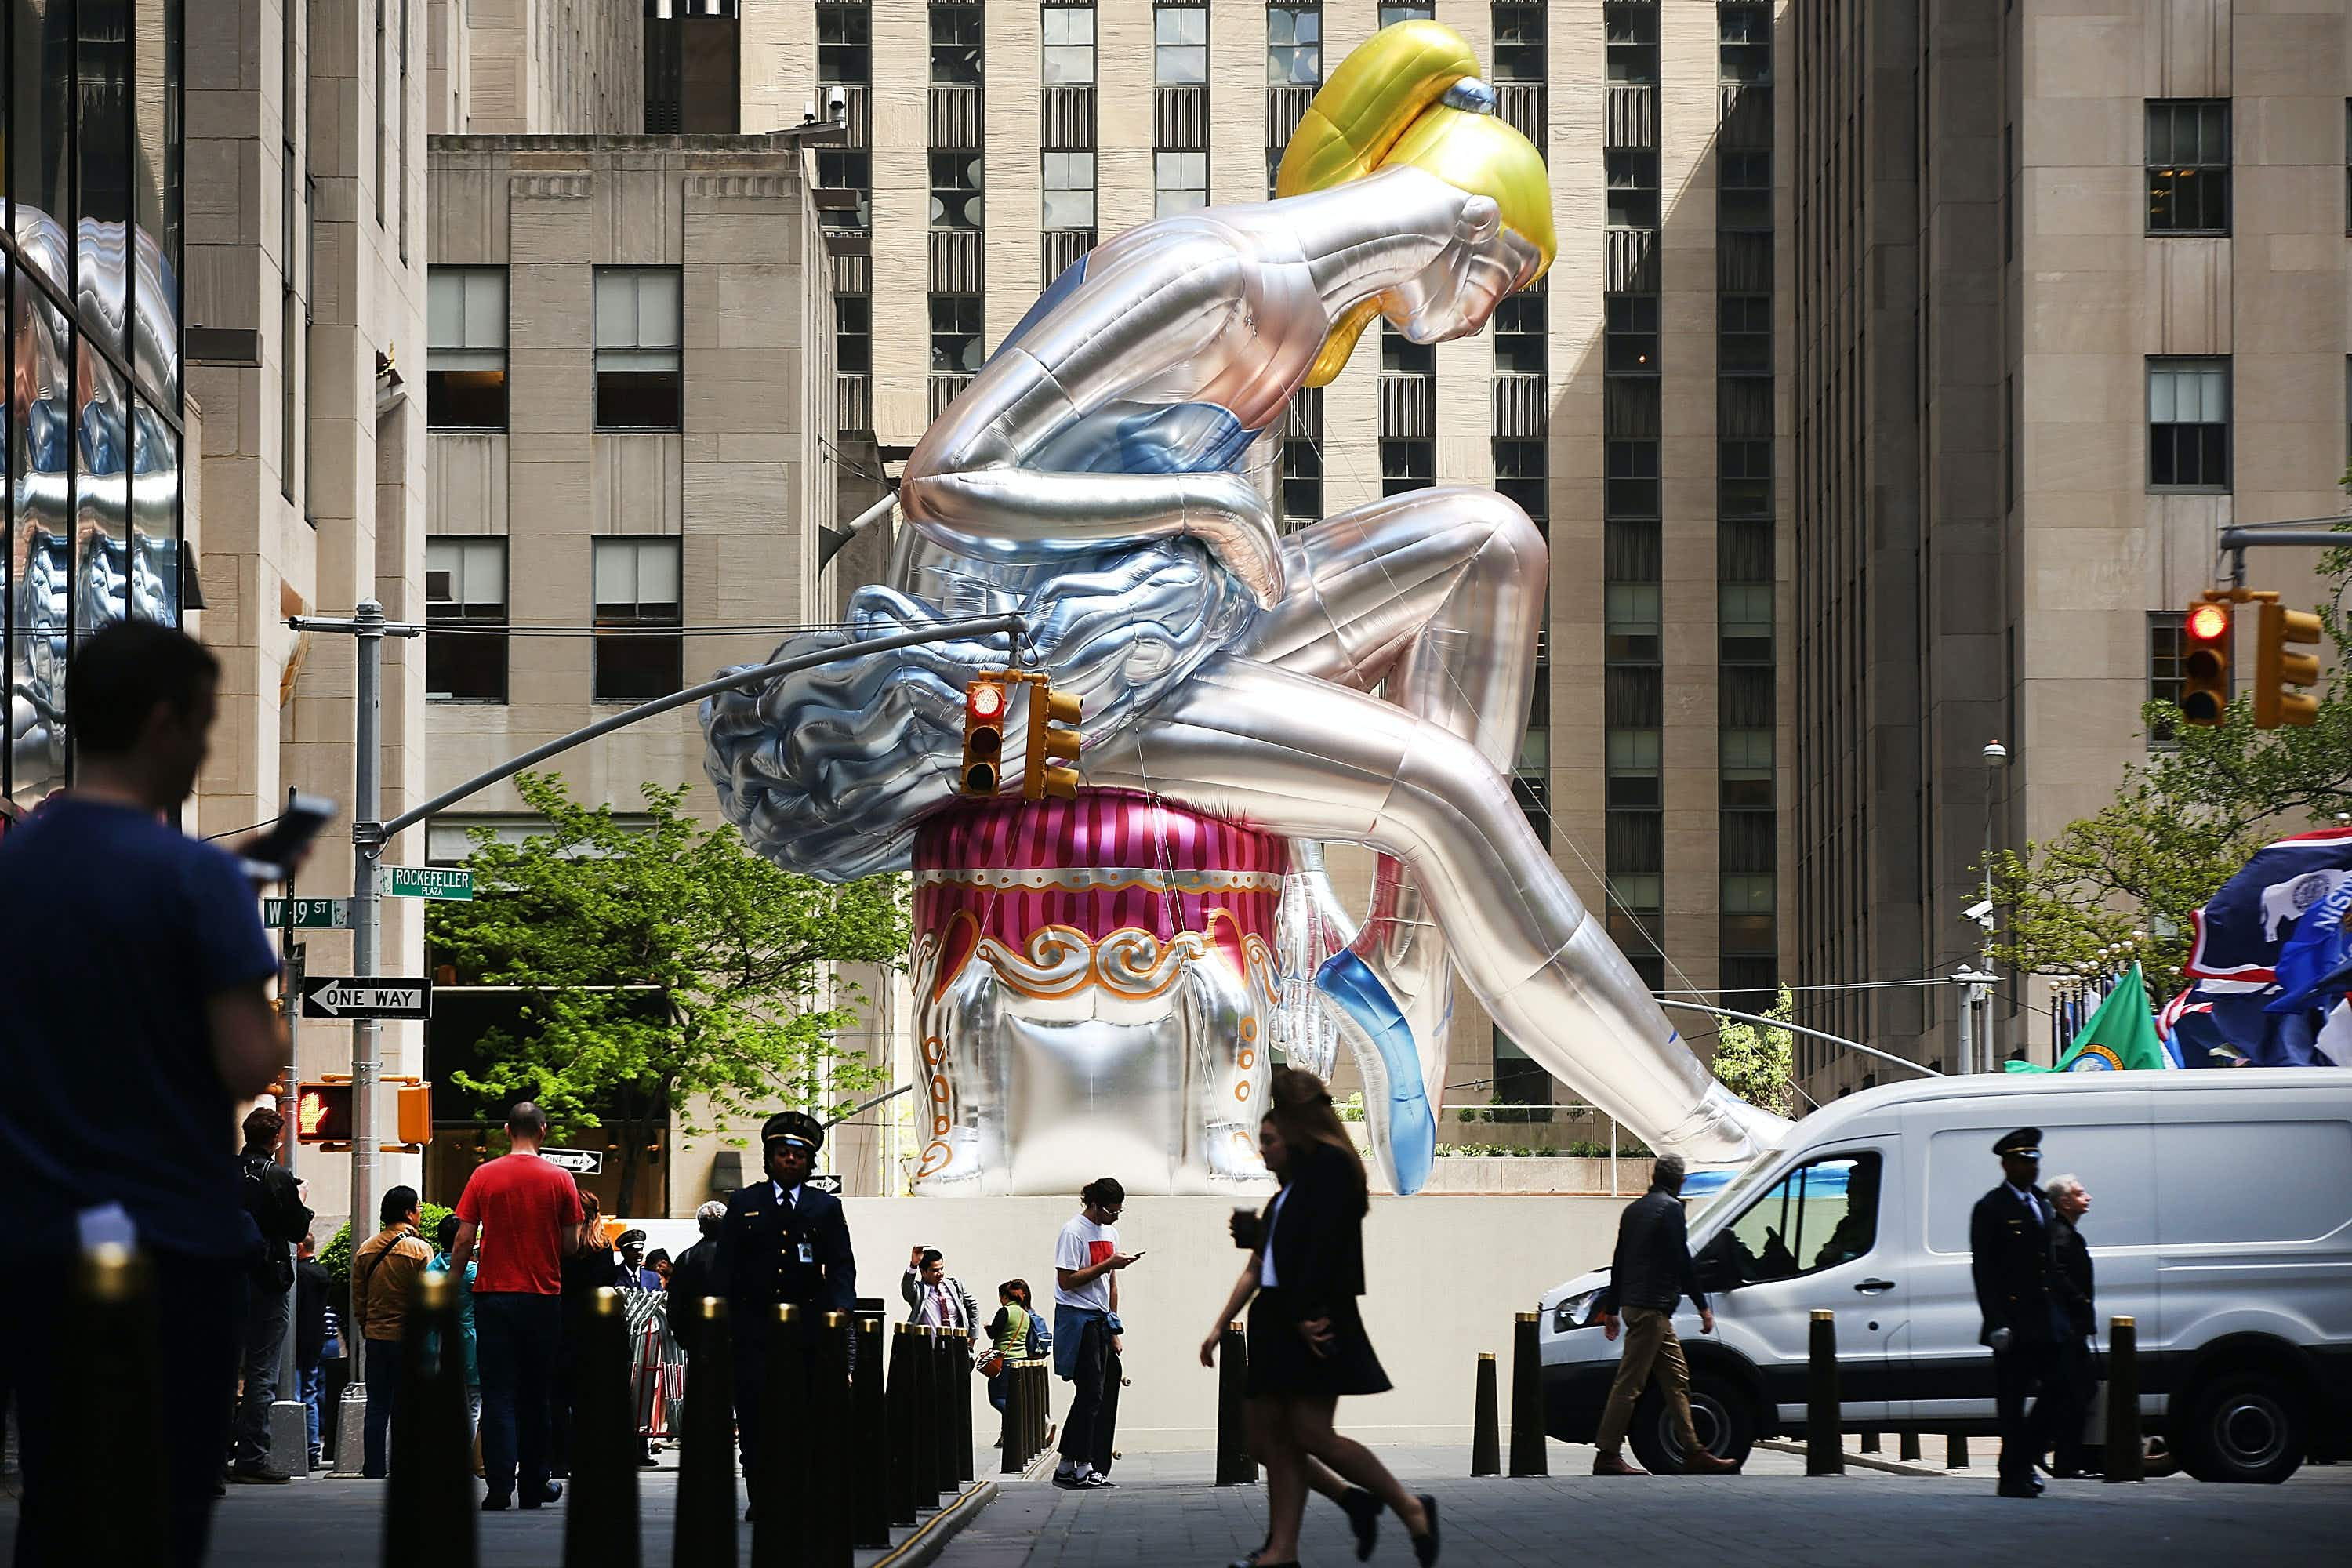 A giant 45-foot inflatable ballerina is on display at New York's Rockefeller Center